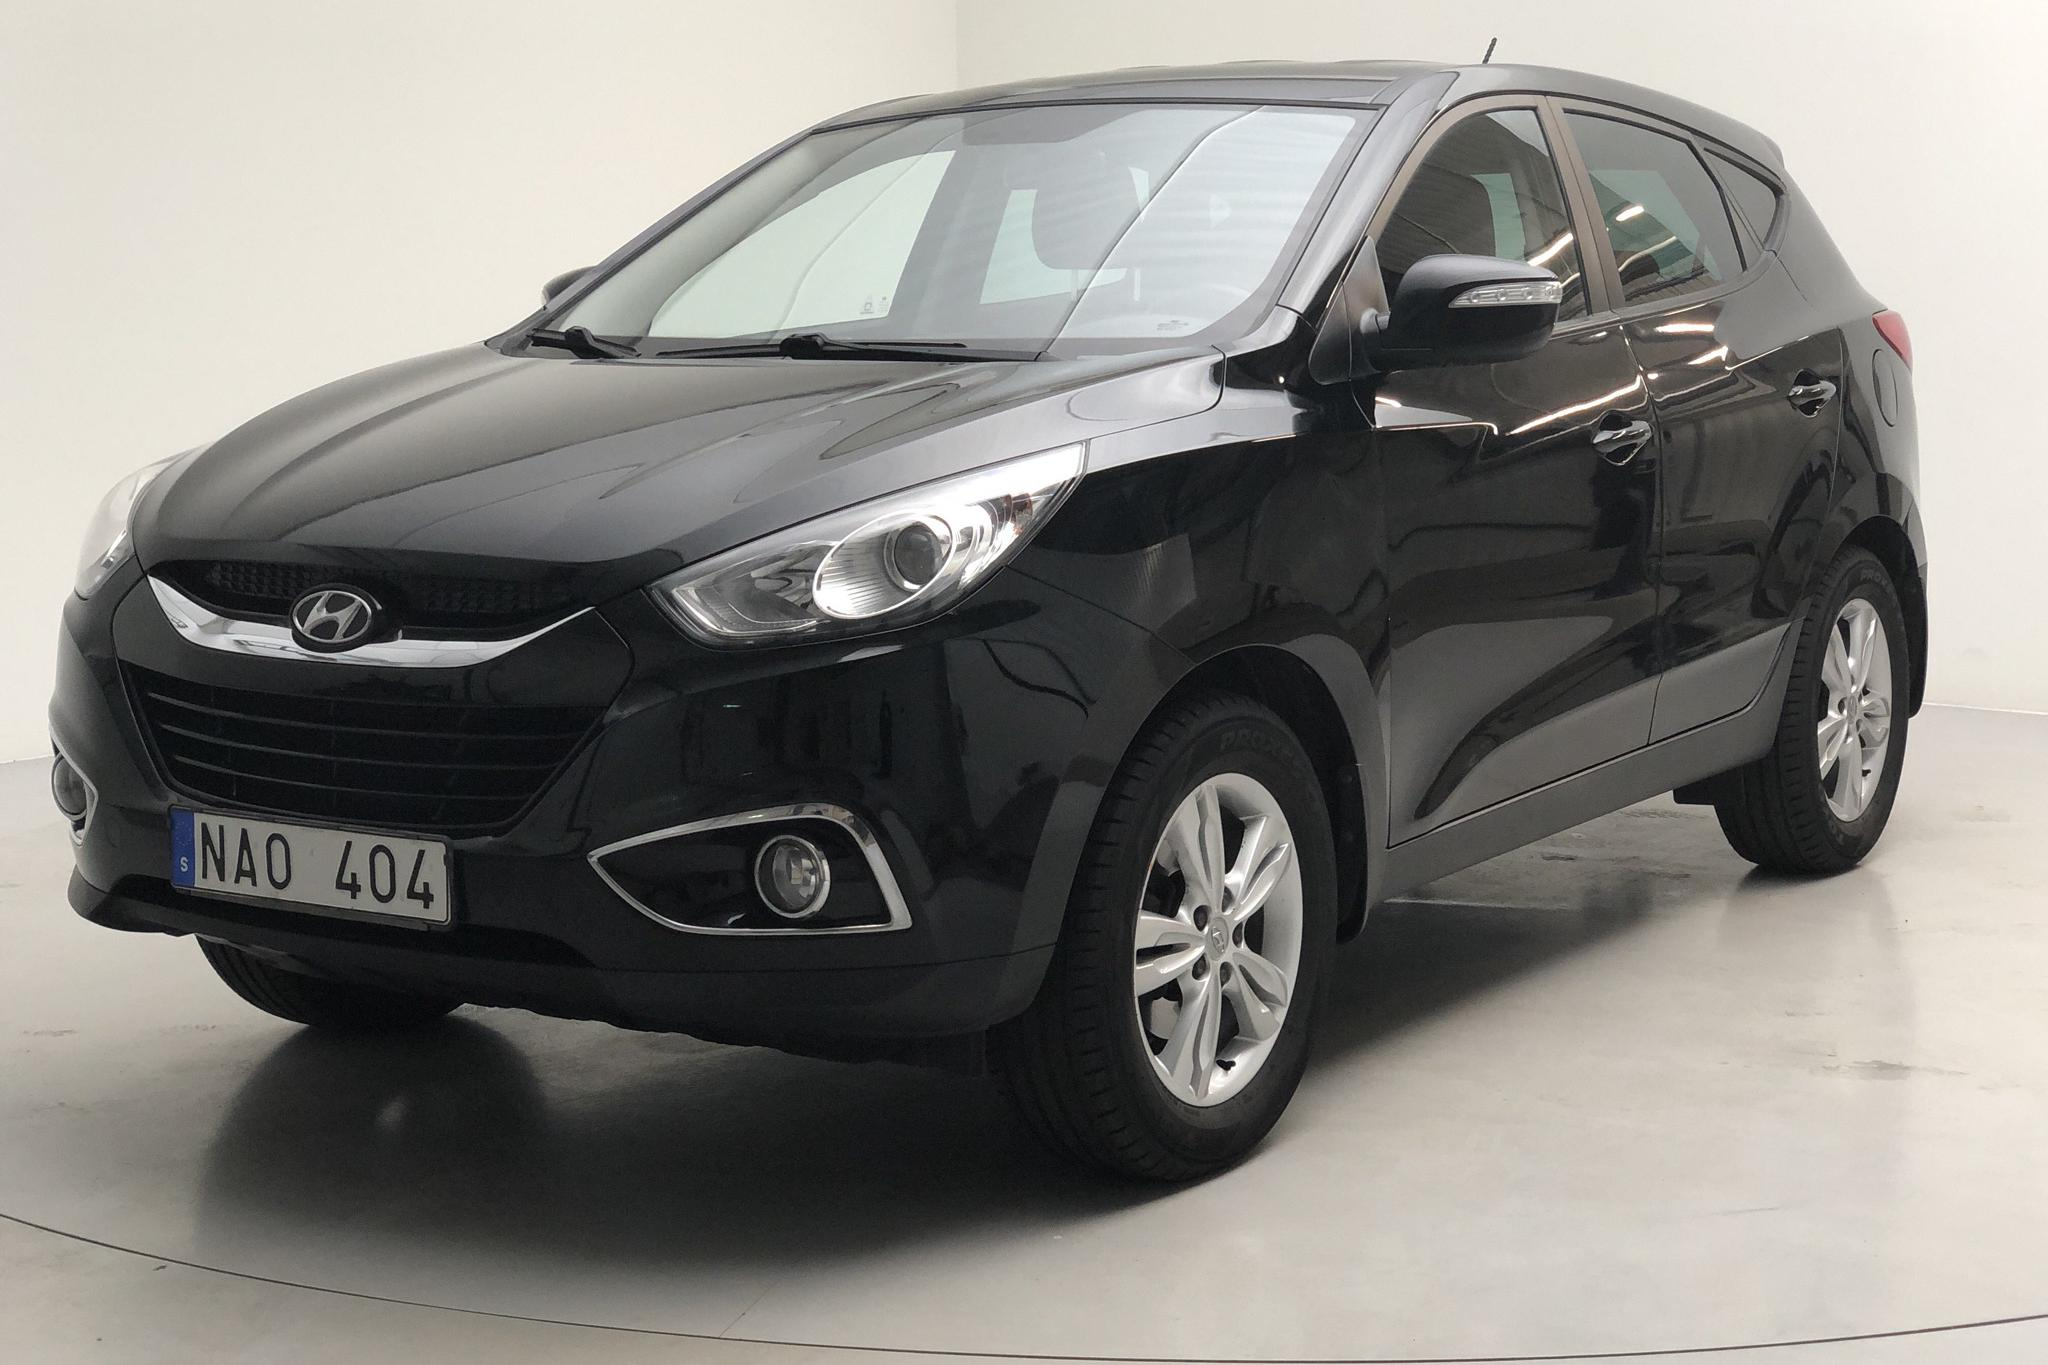 Hyundai iX35 1.6 2WD (136hk) - 113 410 km - Manual - black - 2013